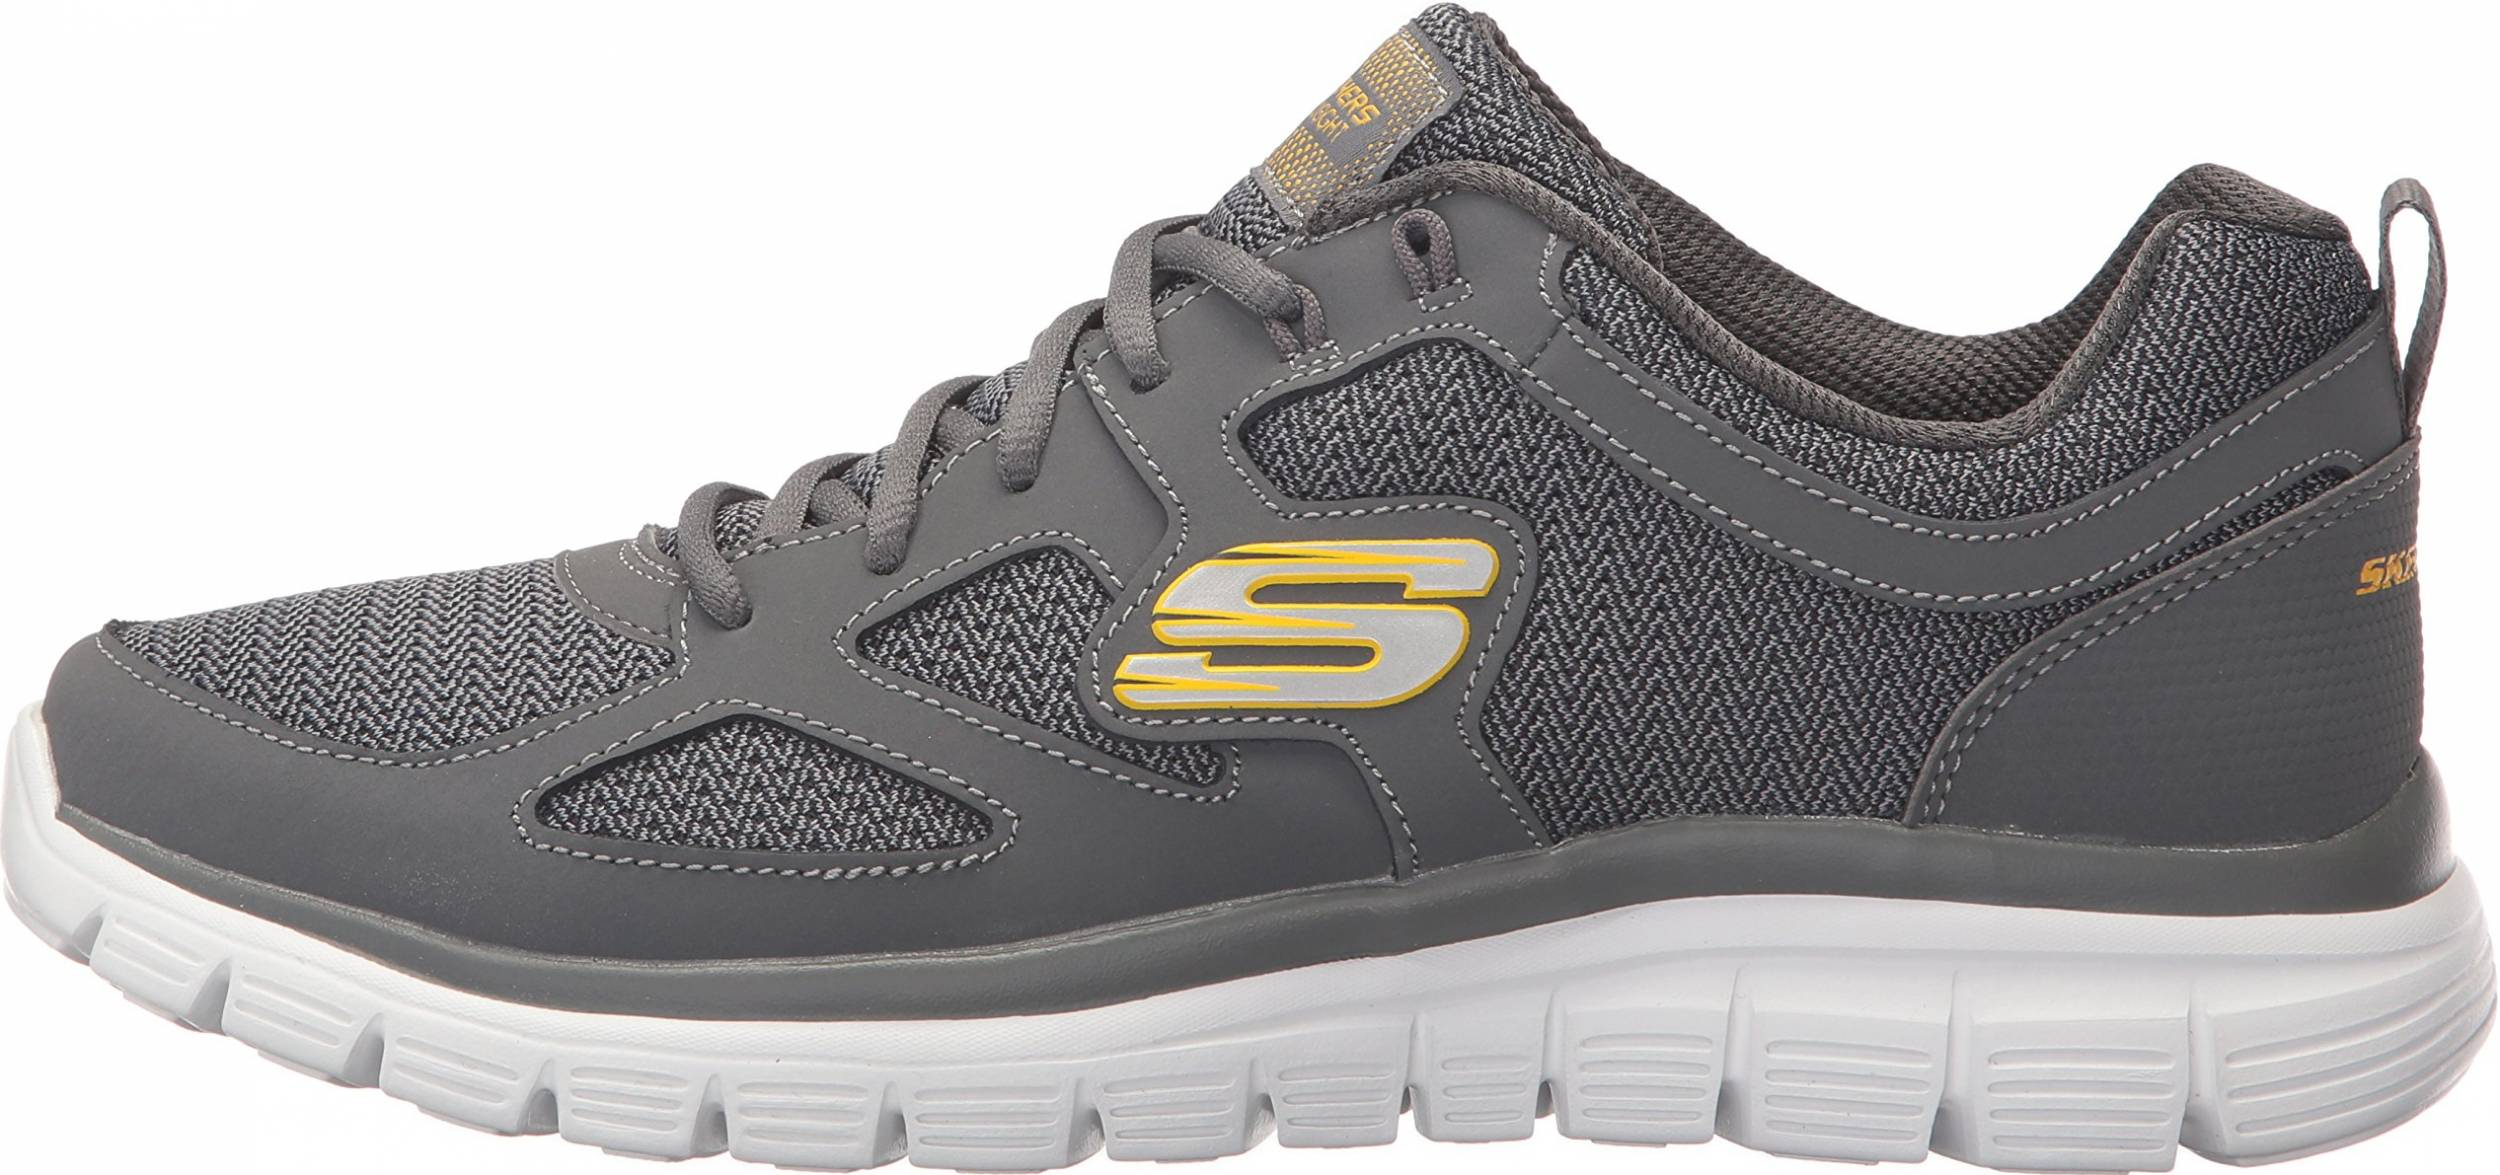 Save 33% on Skechers Training Shoes (30